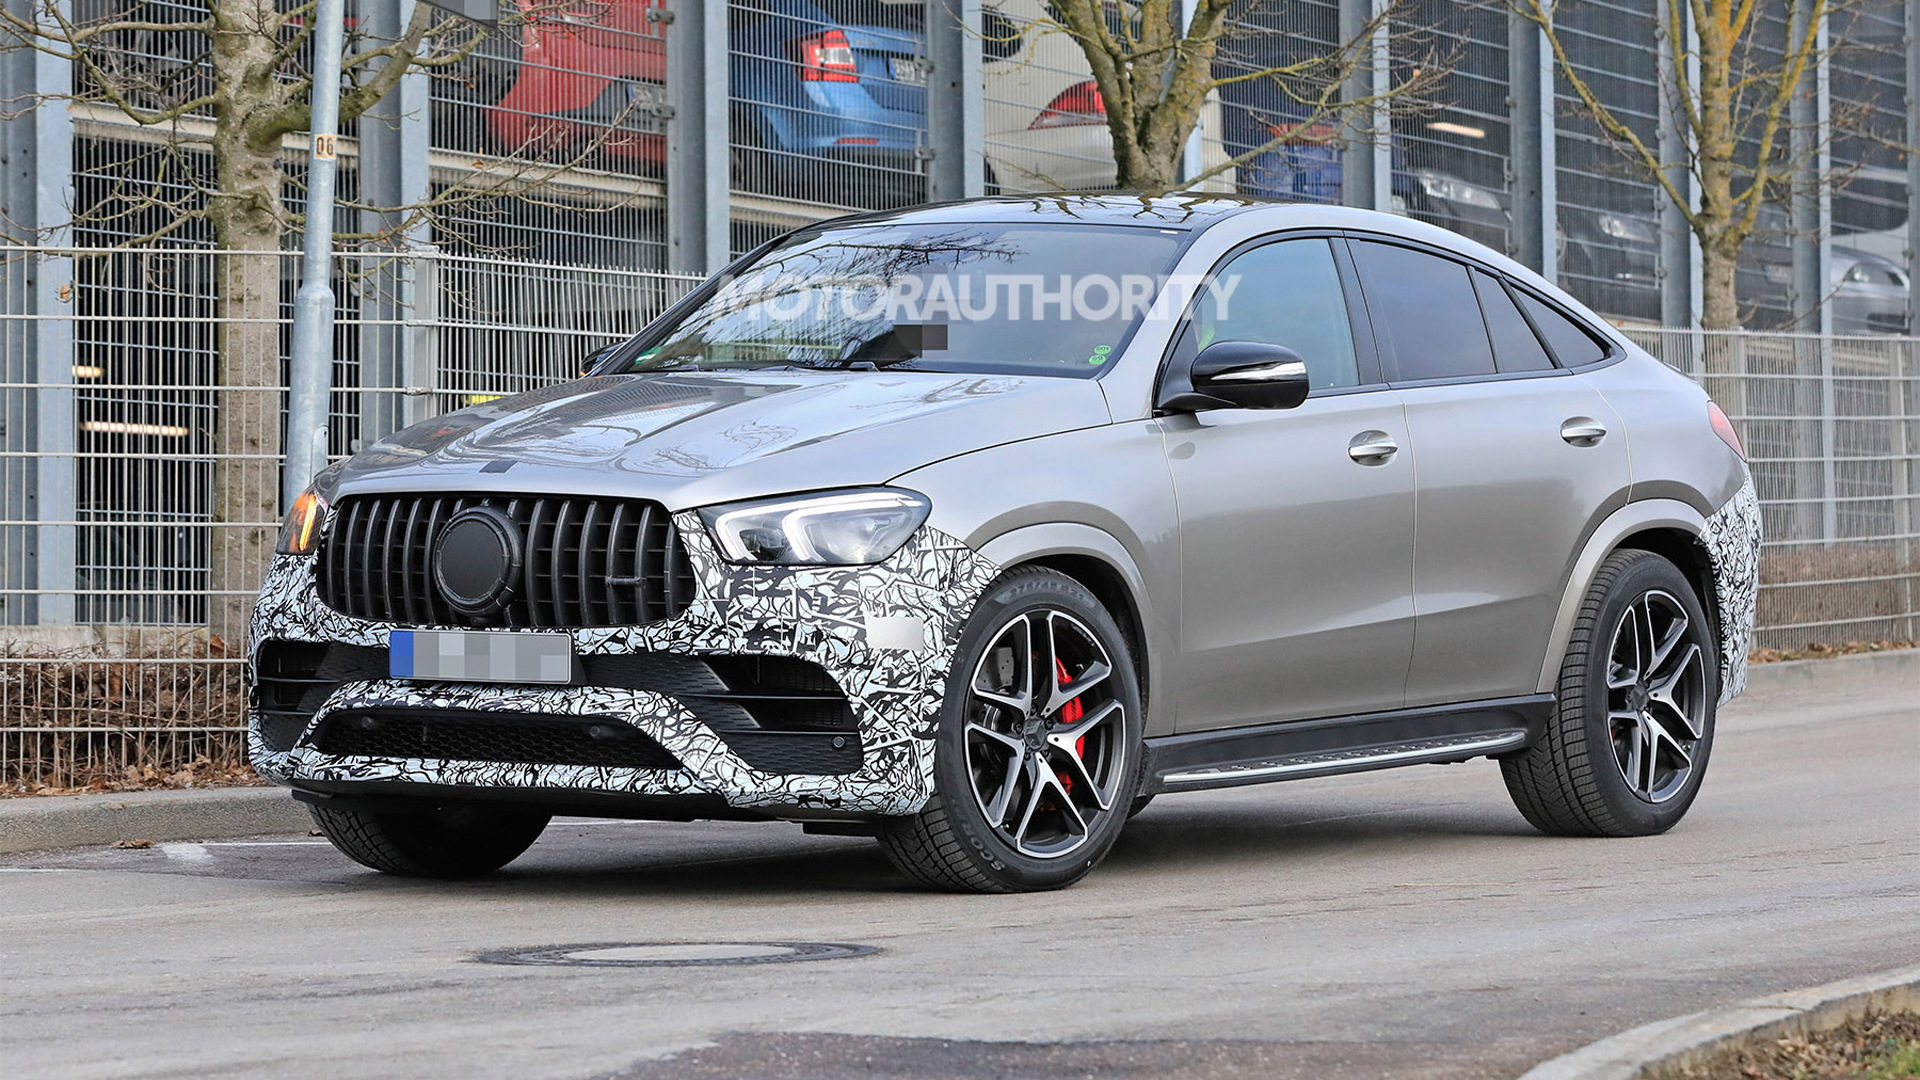 2021 Mercedes-AMG GLE63 Coupe spy shots - Photo credit: S. Baldauf/SB-Medien